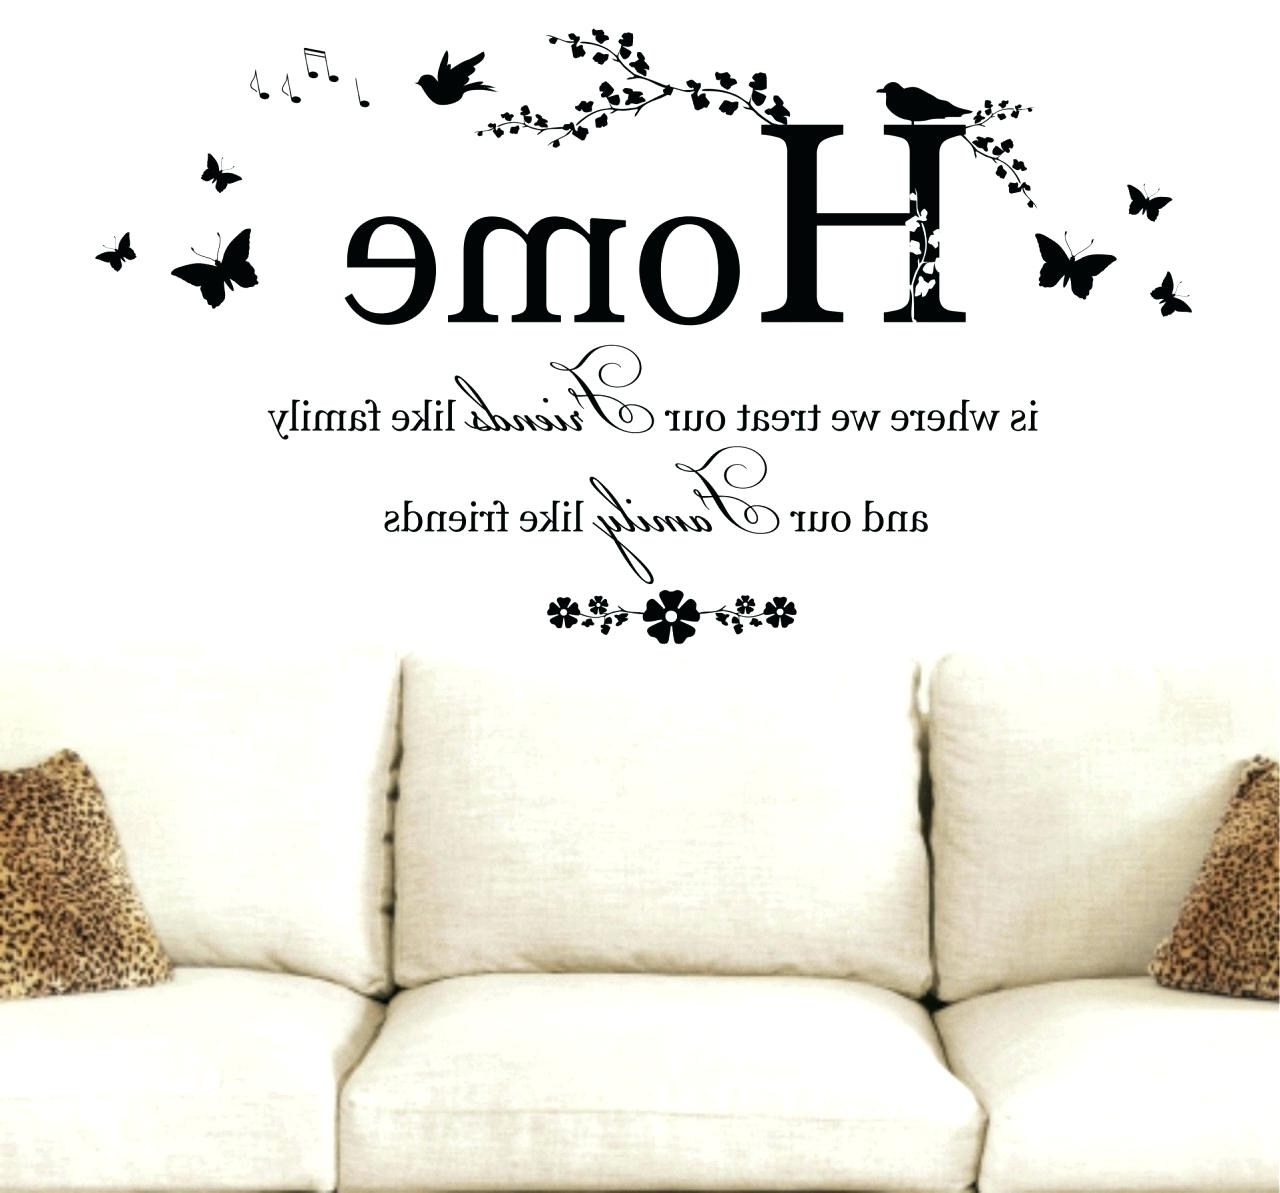 Wall Art Sayings For Most Up To Date Disney Wall Quotes Decals Wall Arts Family Sayings Wall Art Sayings (View 12 of 15)